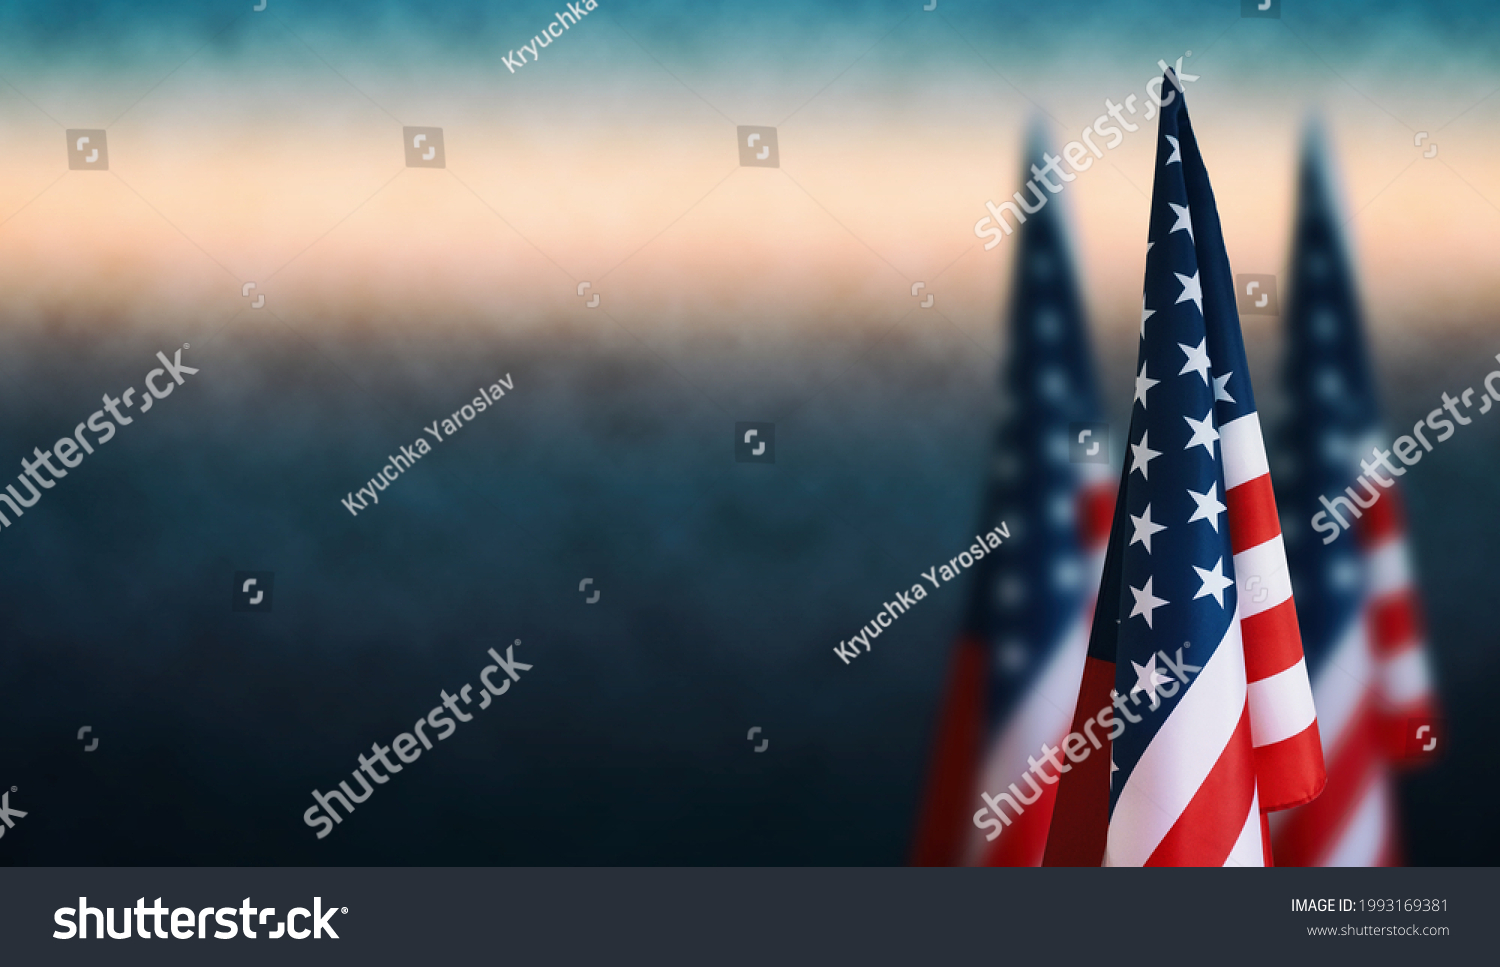 Happy Veterans Day background, American flags against a blue fog background, November 11, American flag Memorial Day, 4th of July, Labour Day, Independence Day. #1993169381